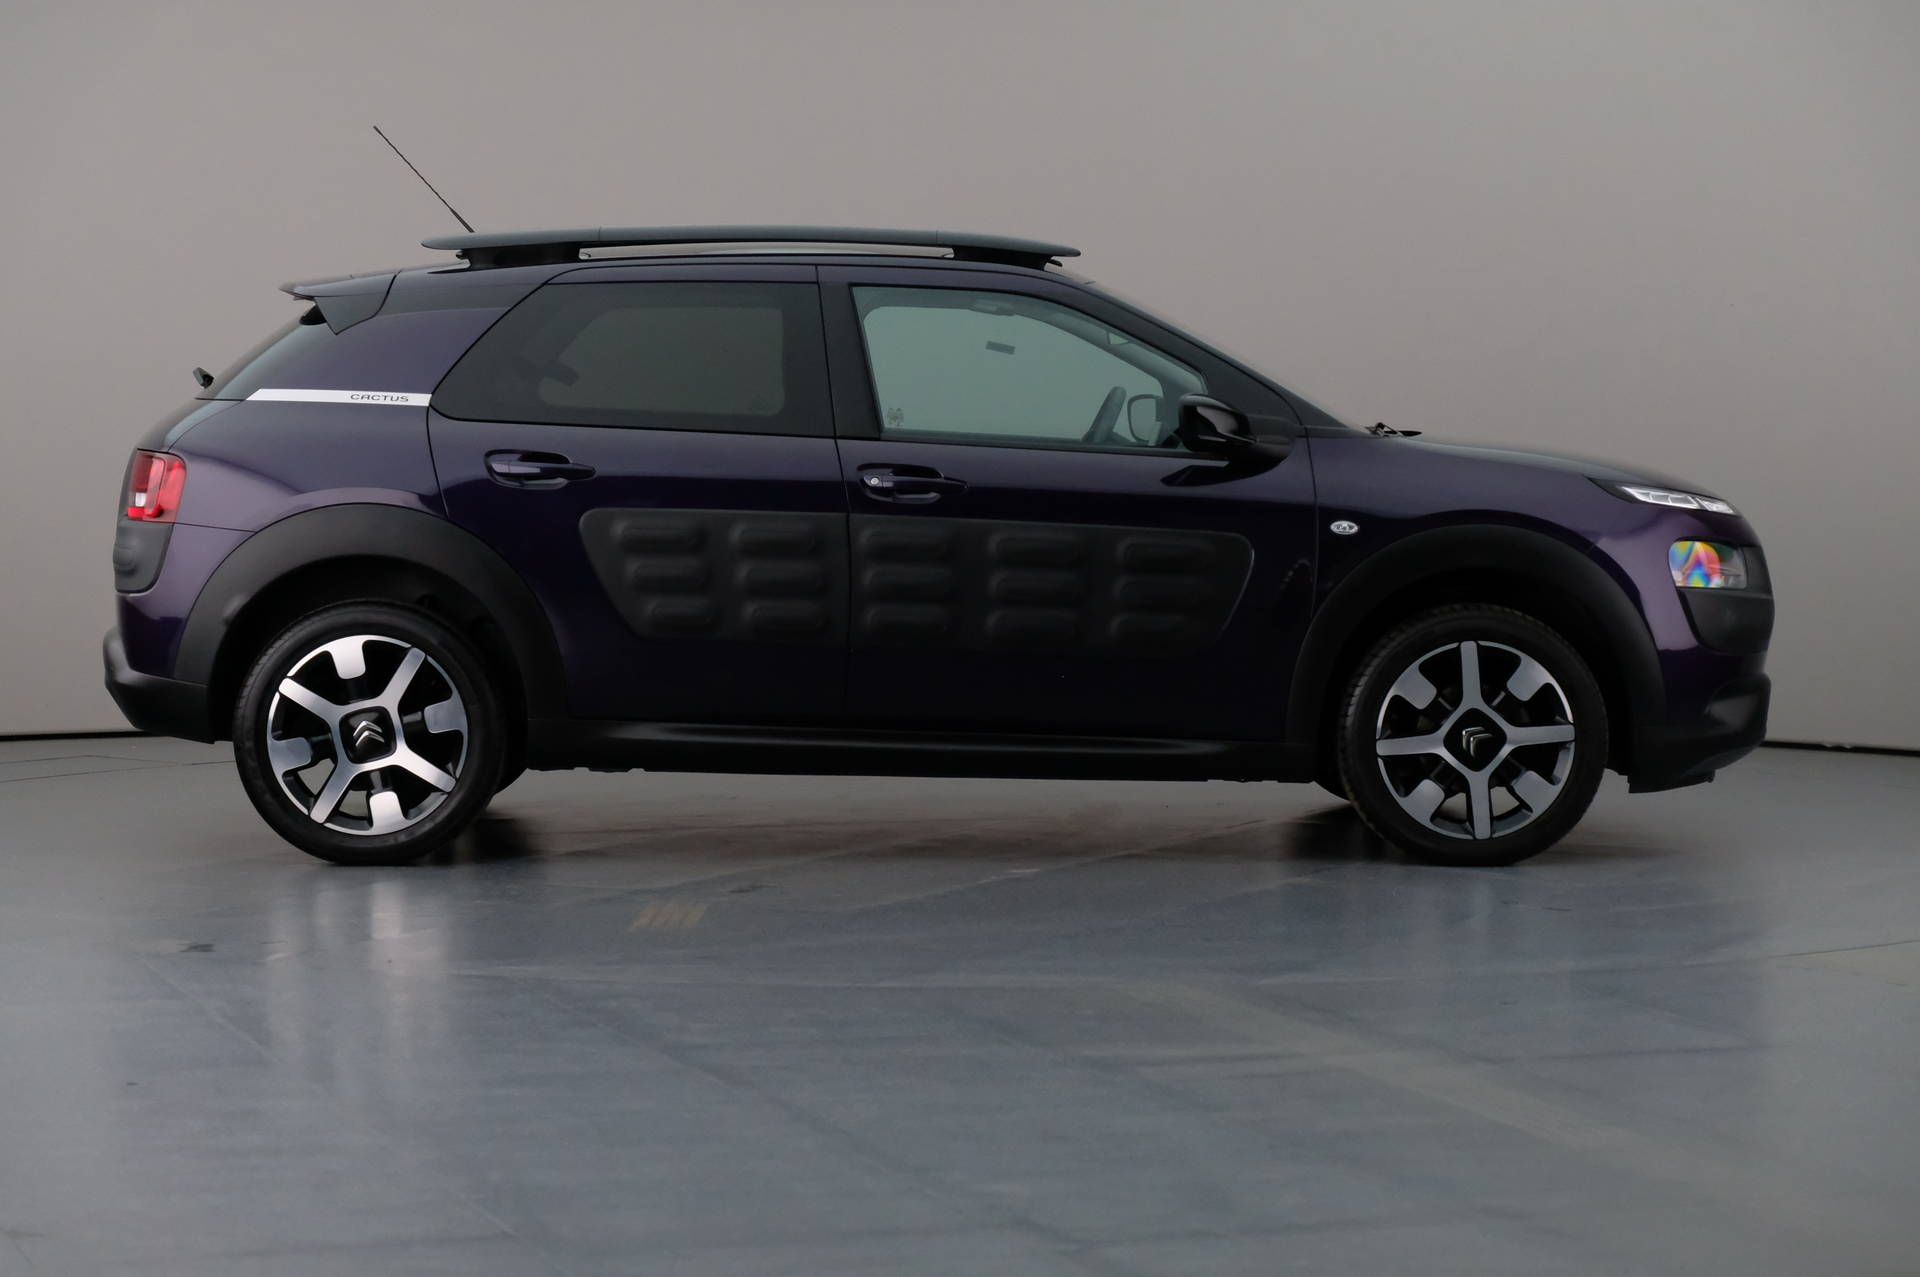 Citroën C4 Cactus 1.6 Blue HDi Flair Edition 5dr, 360-image31